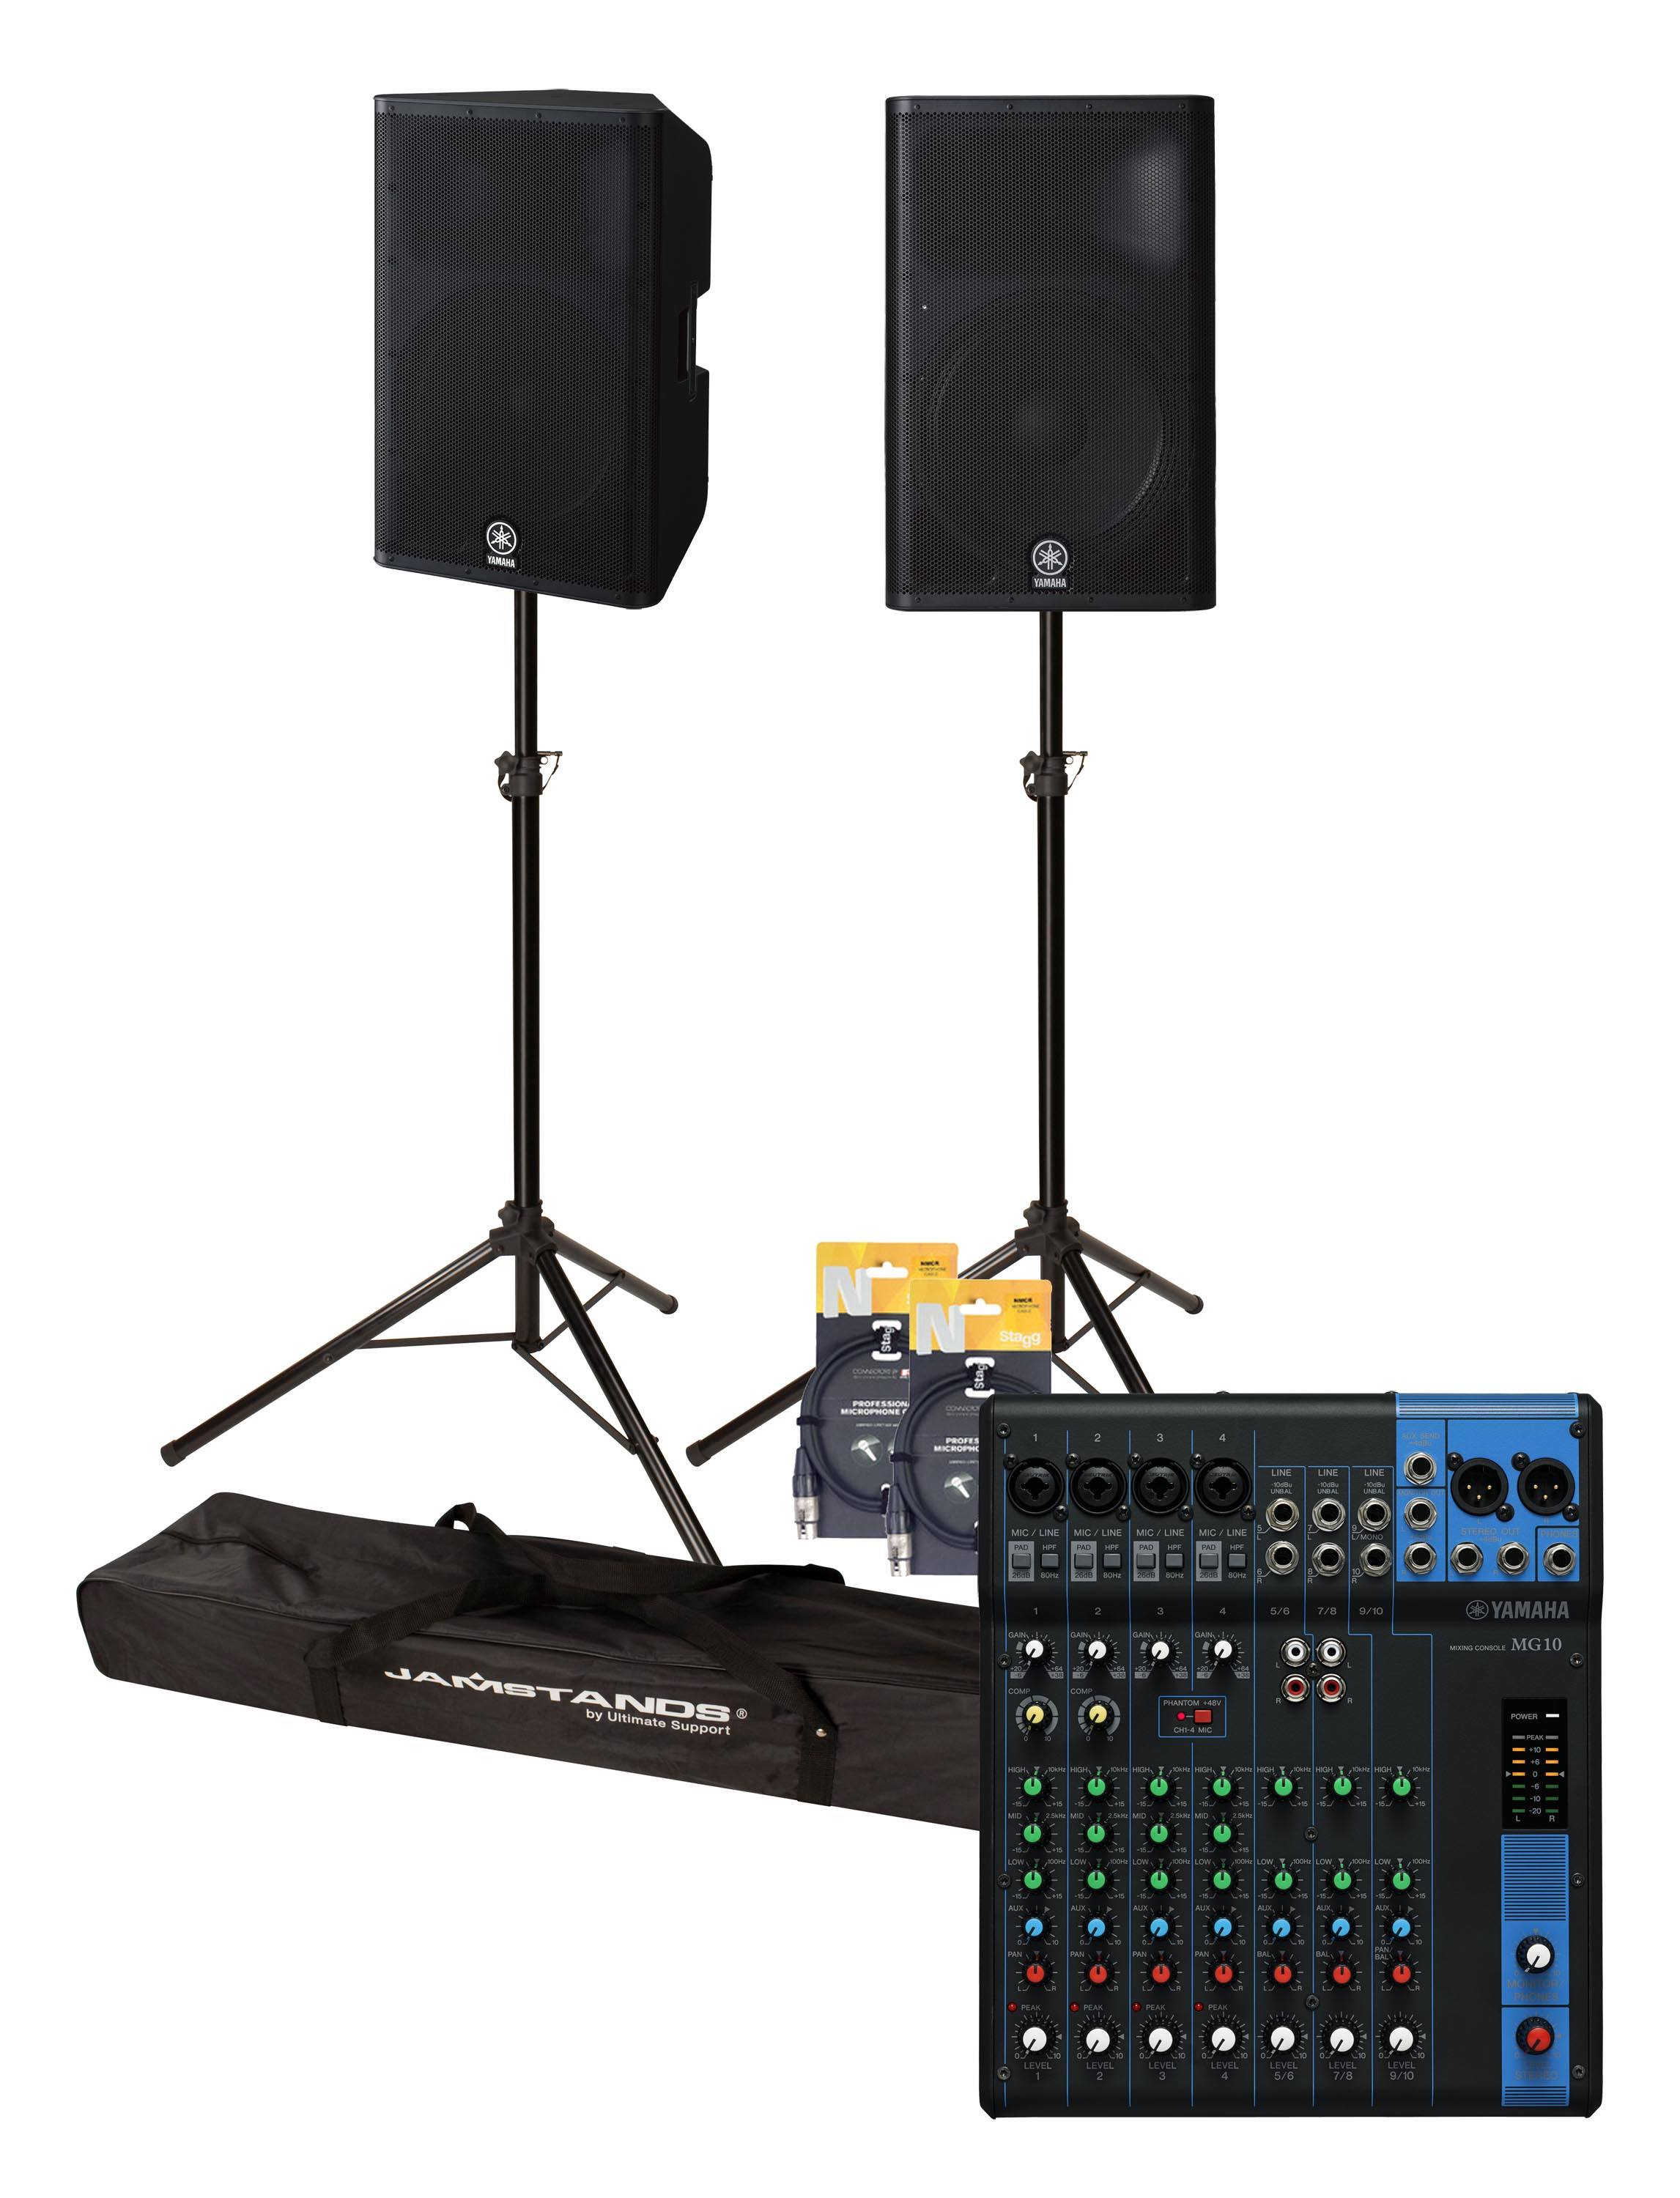 yamaha dxr15 complete active pa speaker package includes mixer stands and cables yamaha music. Black Bedroom Furniture Sets. Home Design Ideas